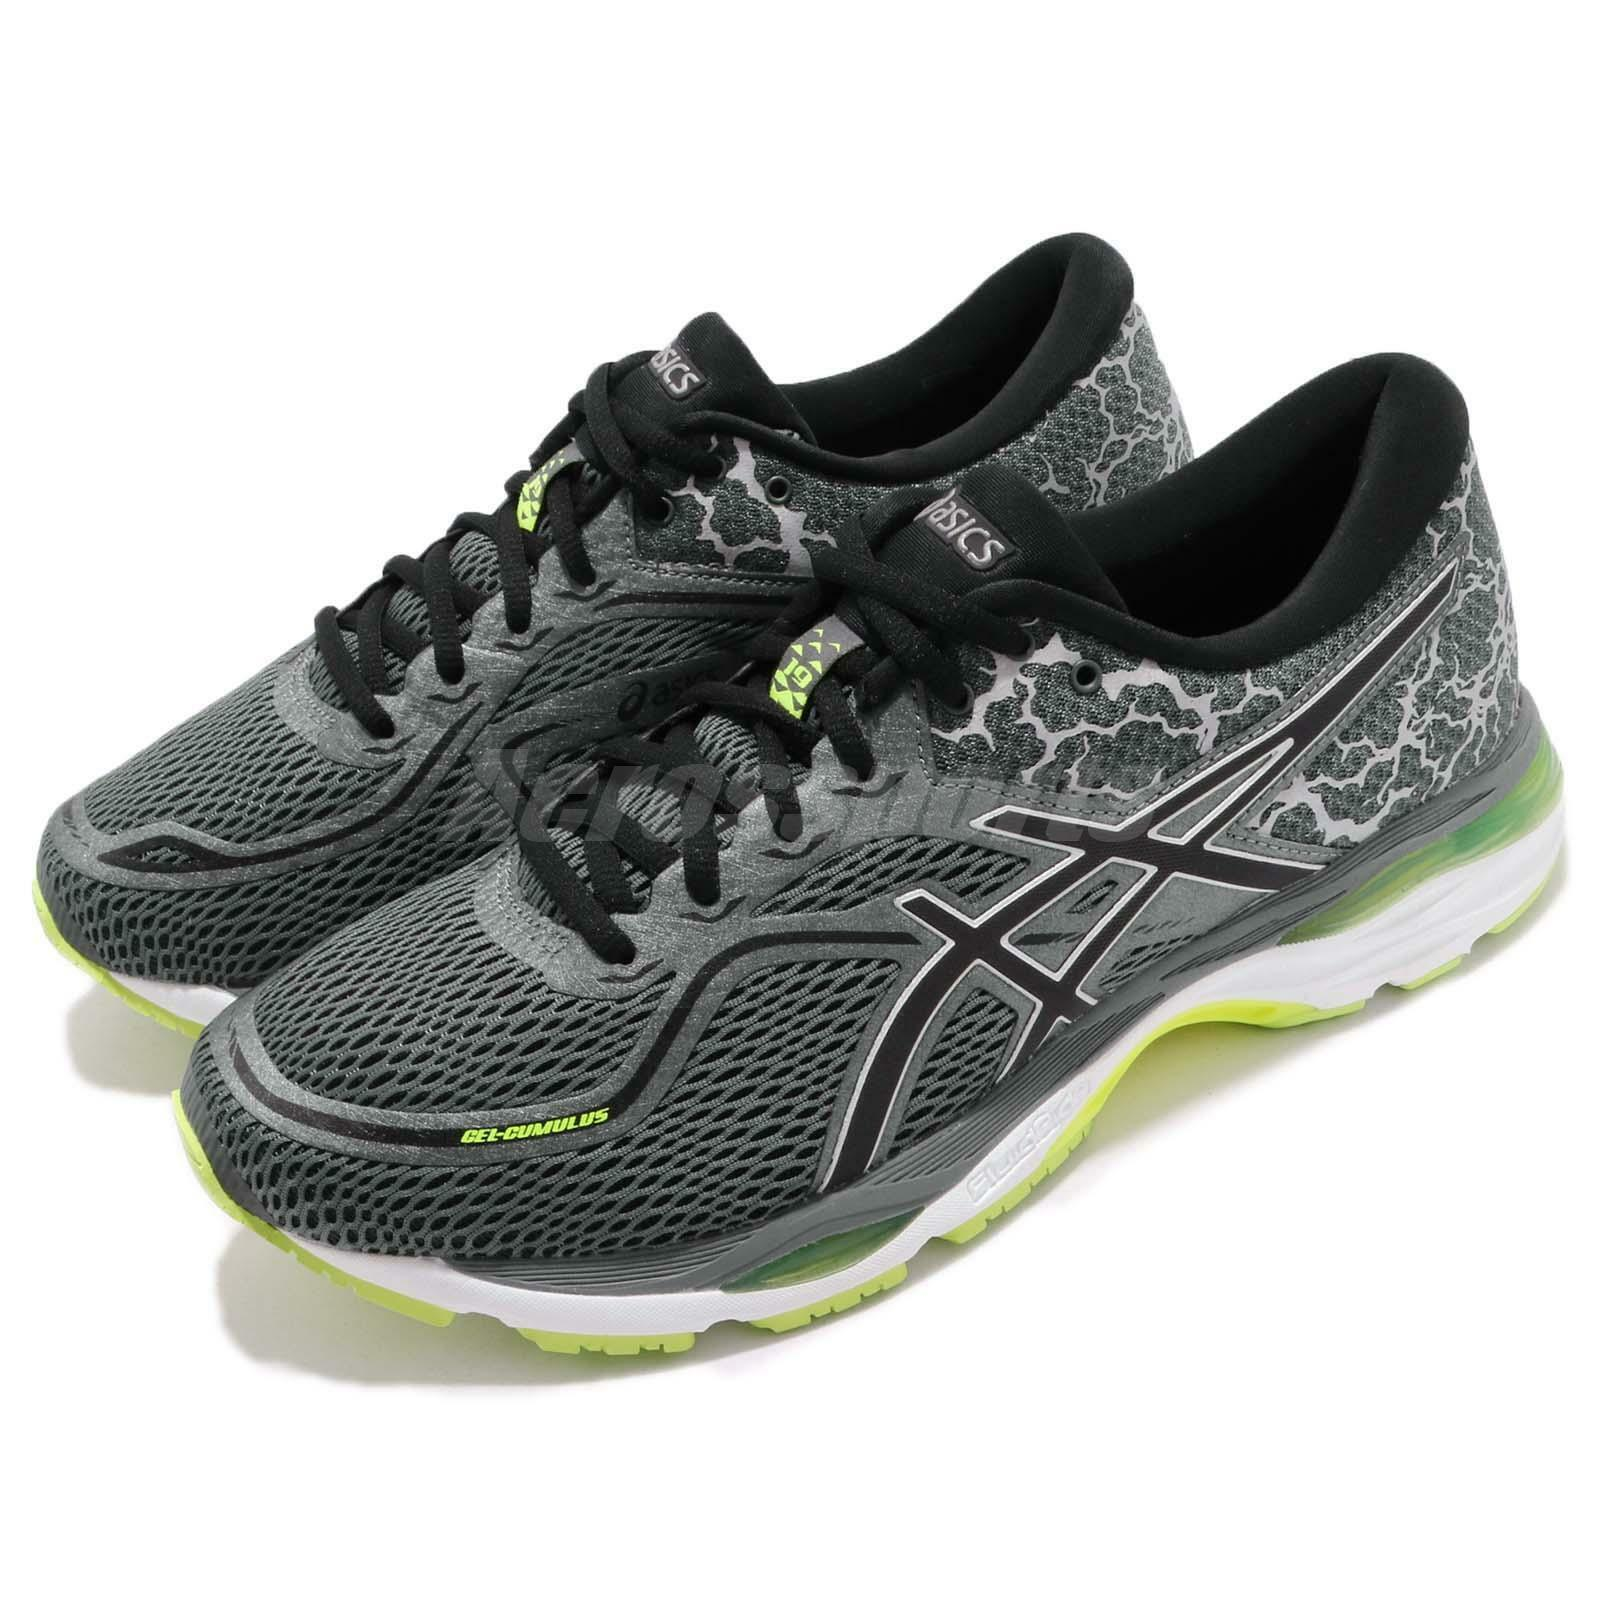 Asics Gel-Cumulus 19 Lite-Show  Grey Yellow Men Gear Road Running shoes T8A1N-9790  with 100% quality and %100 service